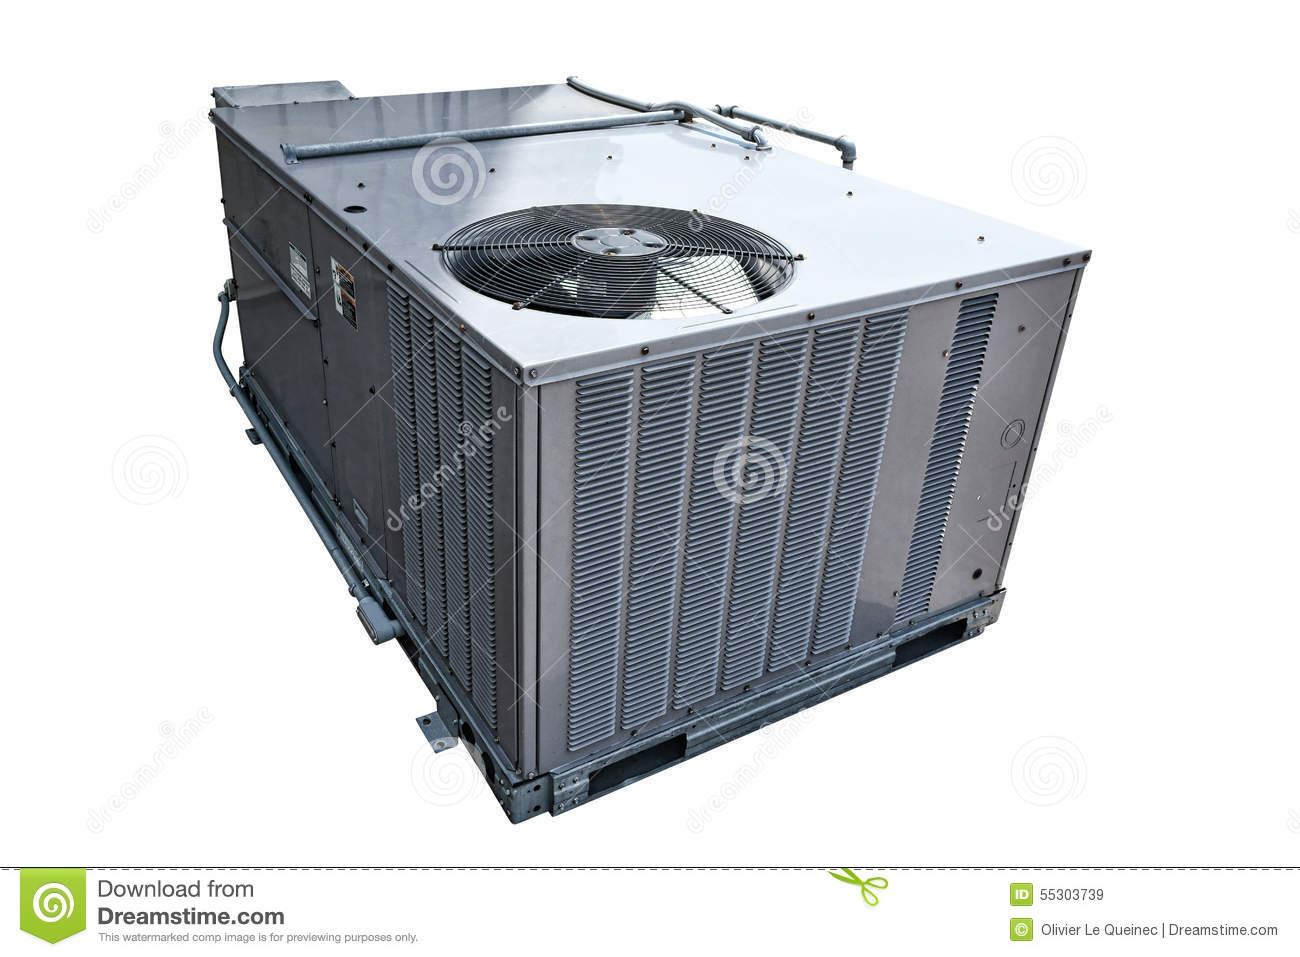 #85A625 Hvac System For Large Buildings Buckeyebride.com Best 2113 Condenser For Ac Unit photos with 1300x957 px on helpvideos.info - Air Conditioners, Air Coolers and more